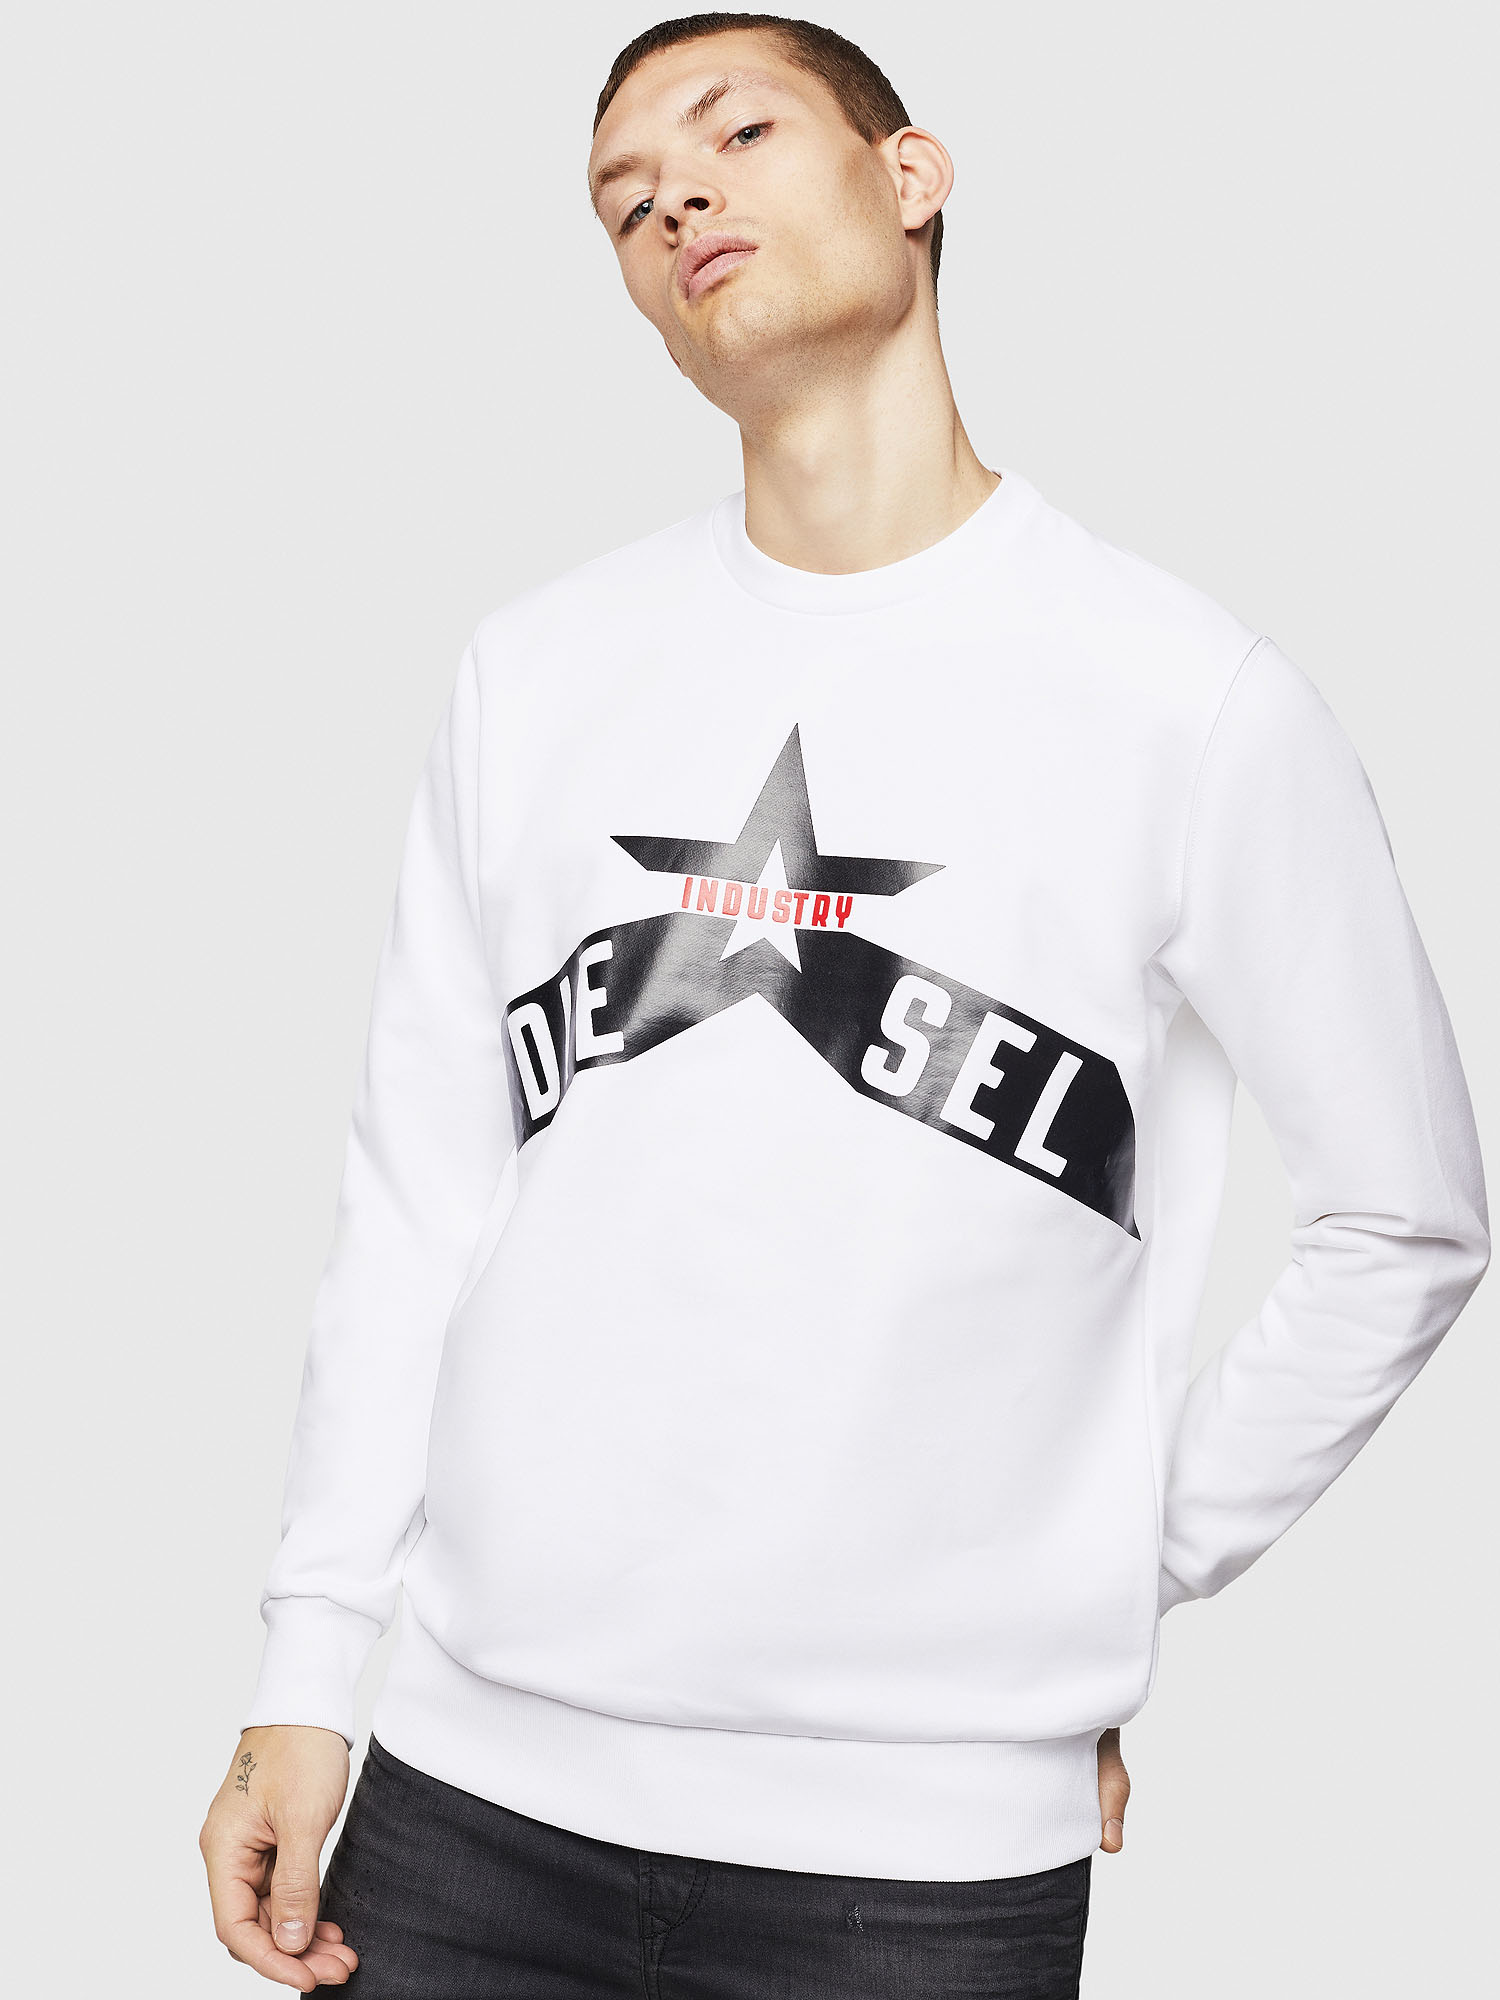 Diesel - S-GIR-A2, White - Sweaters - Image 1